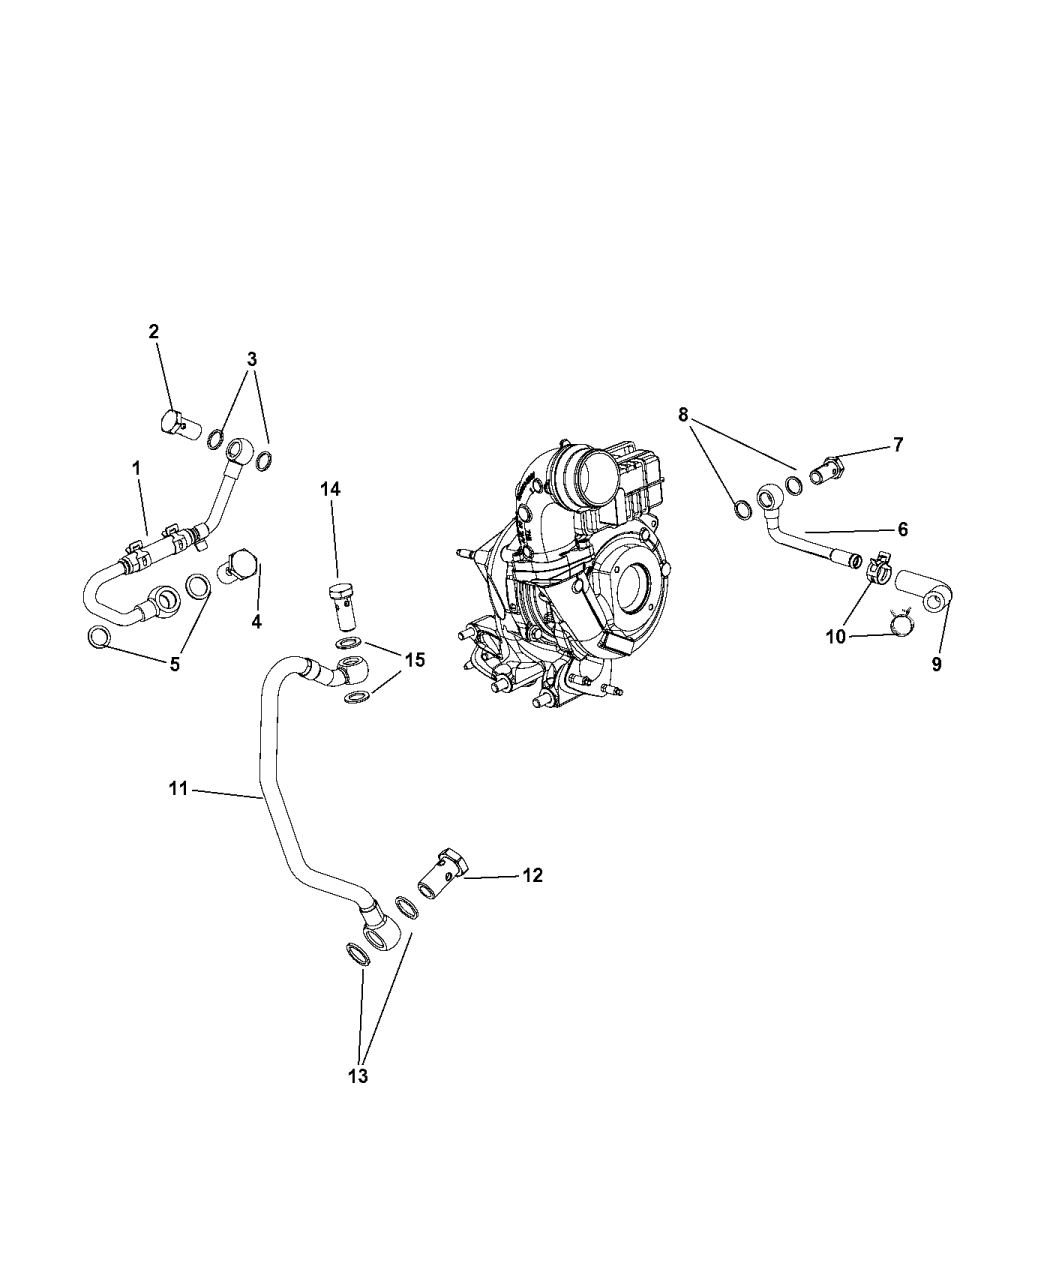 2013 Jeep Grand Cherokee Turbocharger Cooling System Diagram